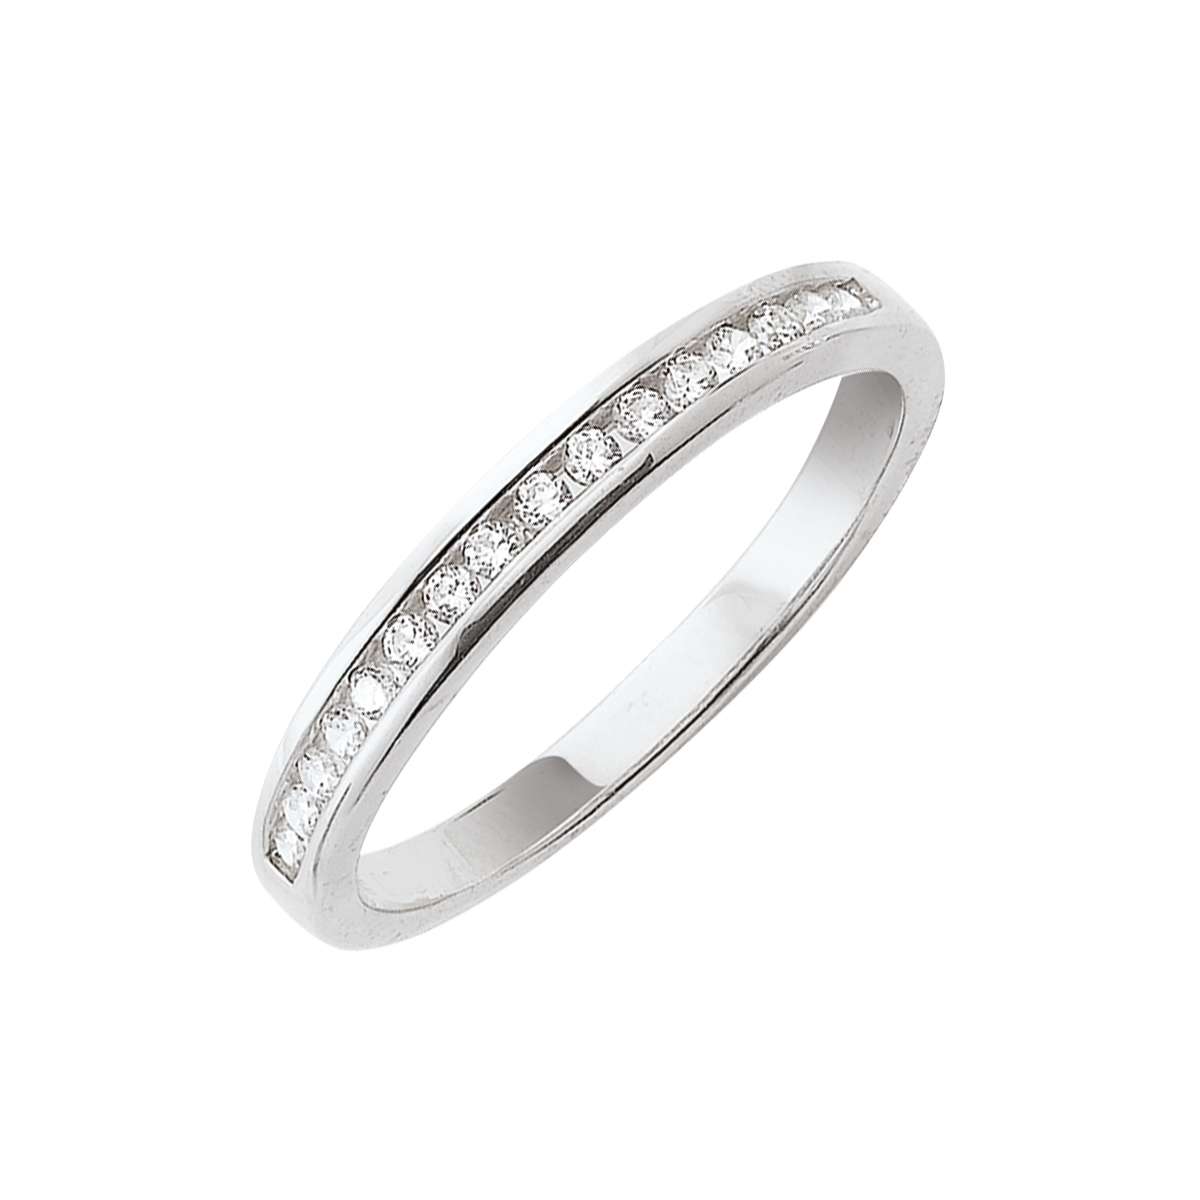 Alliance demi-tour serti rail or blanc - Diamants synthétiques 0,20 carat